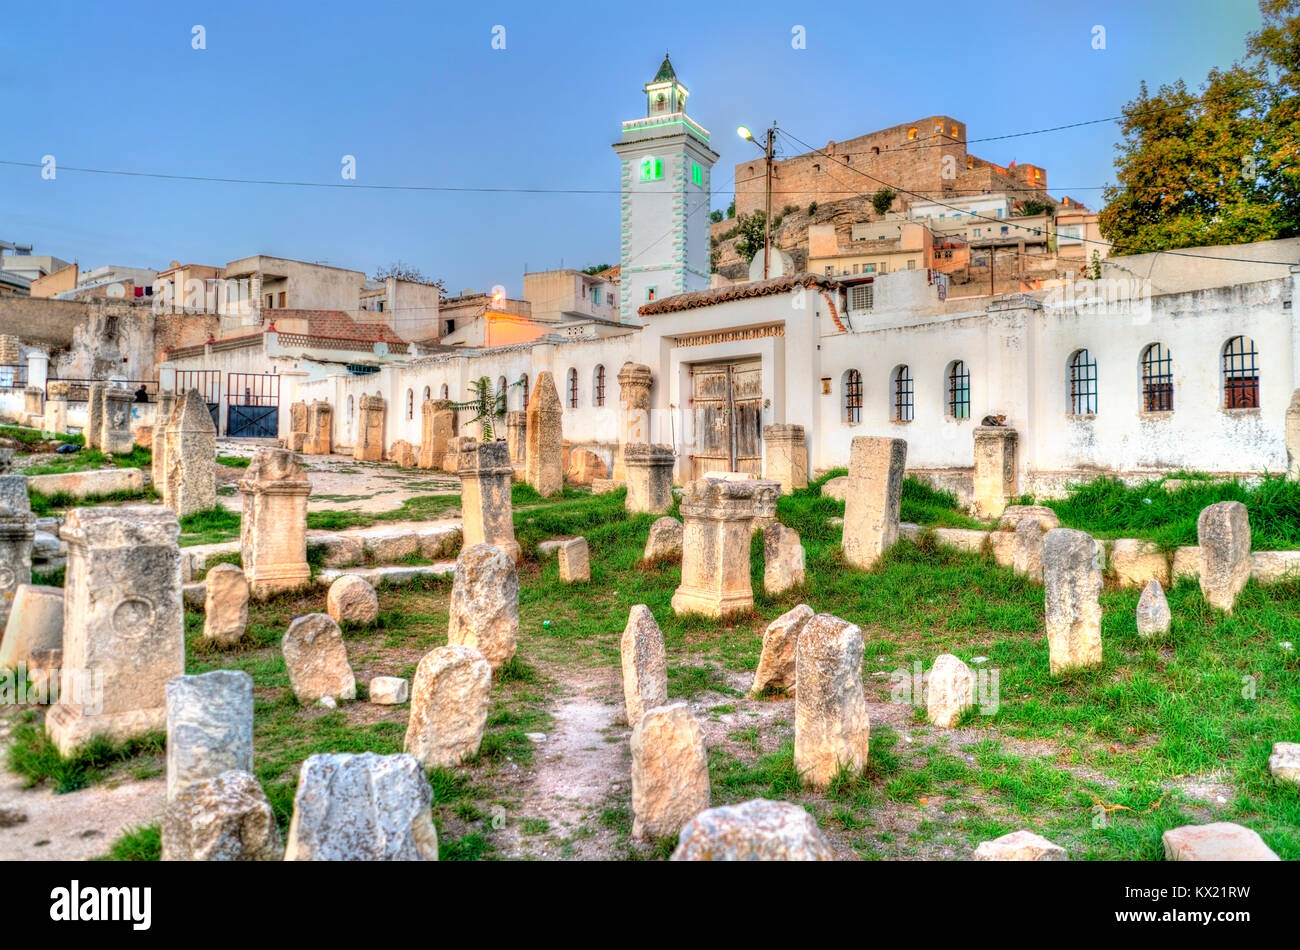 Ruins of the Roman temple in el Kef, Tunisia - Stock Image